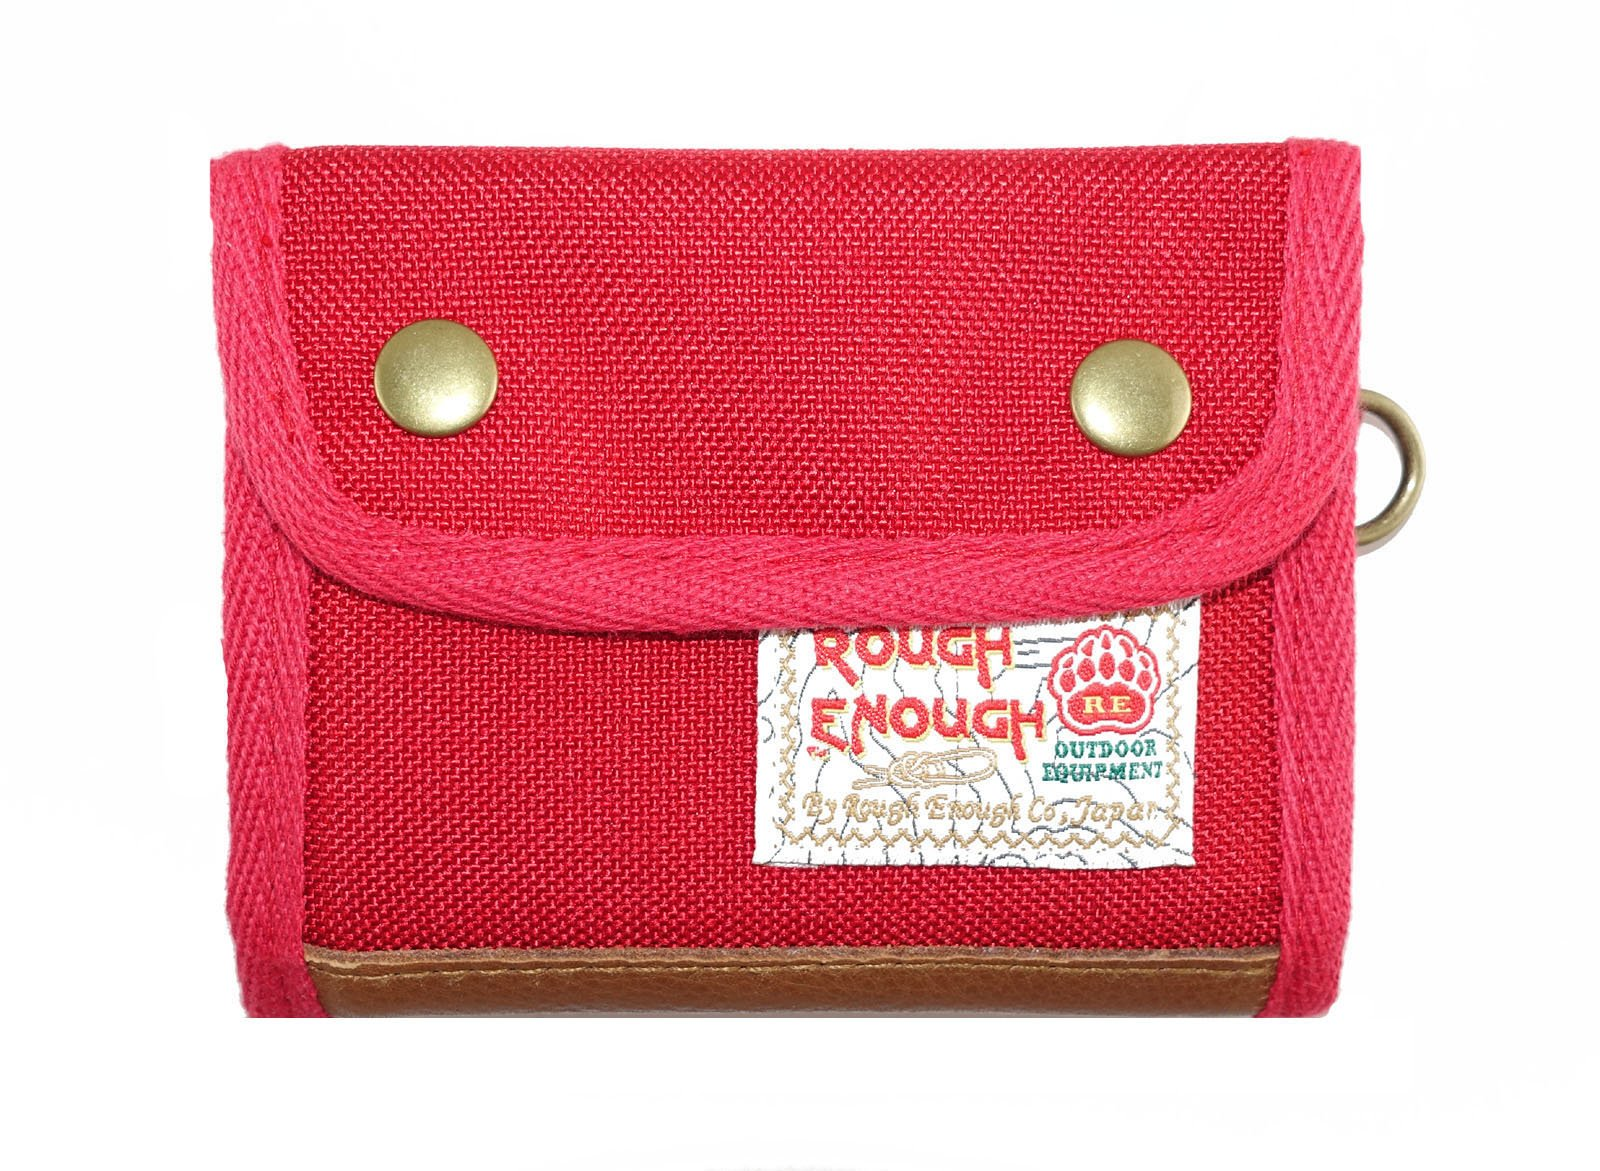 Rough Enough Polyester Leather Trimming Vintage Large Capacity Trifold Short Portable Zippered Coin Wallet Purse Pouch Case Holder Organizer with Snap Button Closure for Kids Boys Teens Outdoors Red